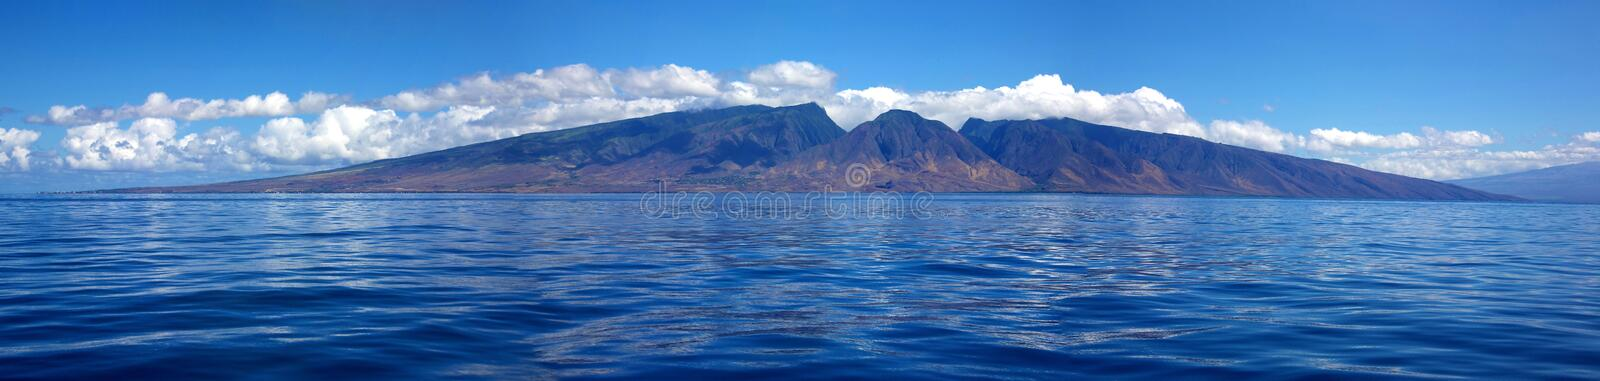 West Maui mountains. A panorama of the west Maui mountains as seen from the water off of Lahaina Maui, Hawaii stock photo